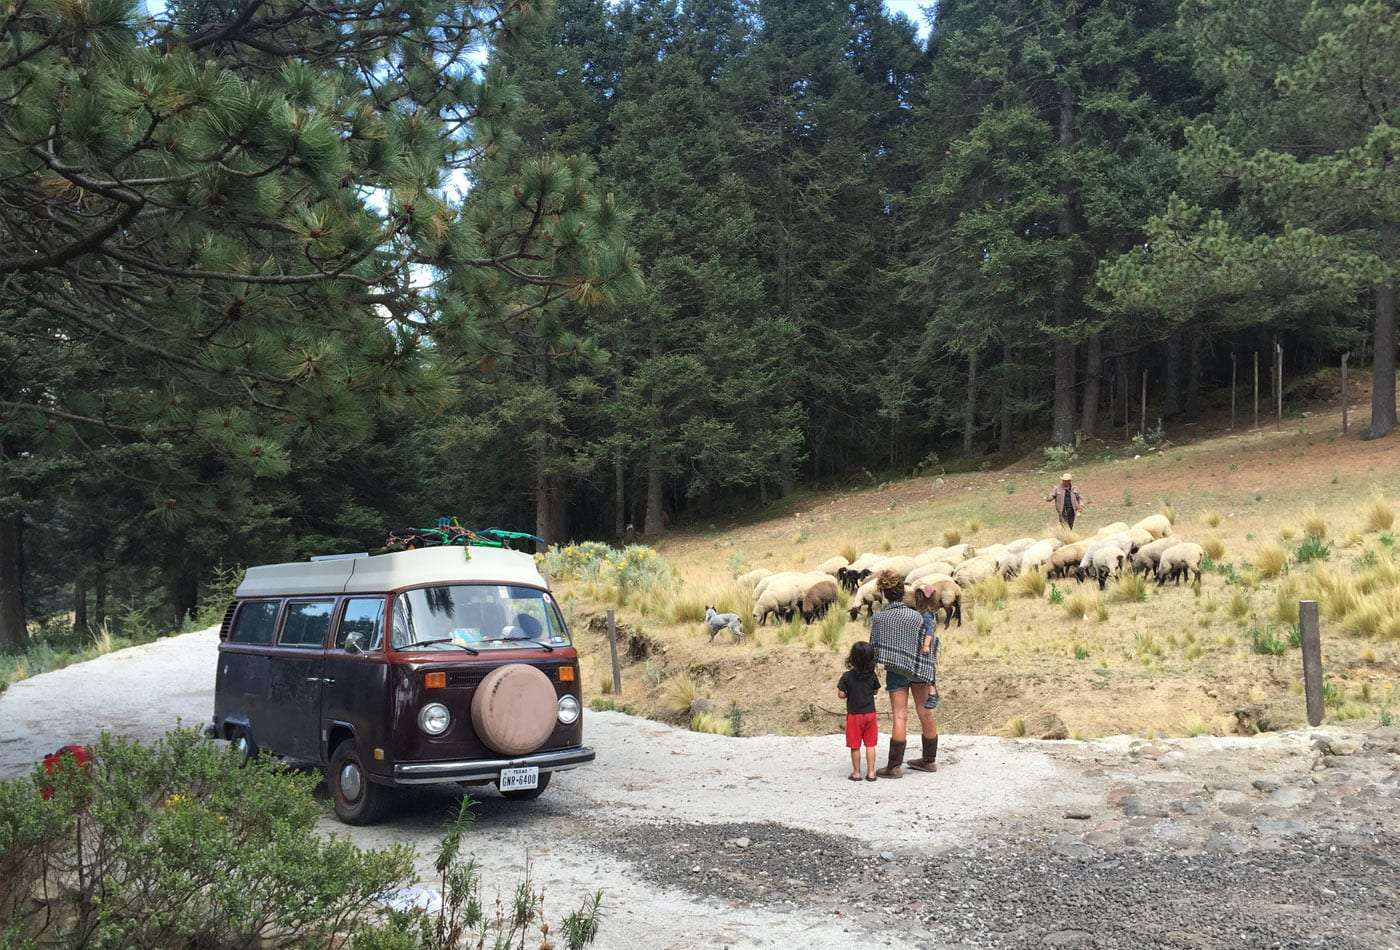 a flock of sheep, a family watches as their VW bus sits at the side of a road.